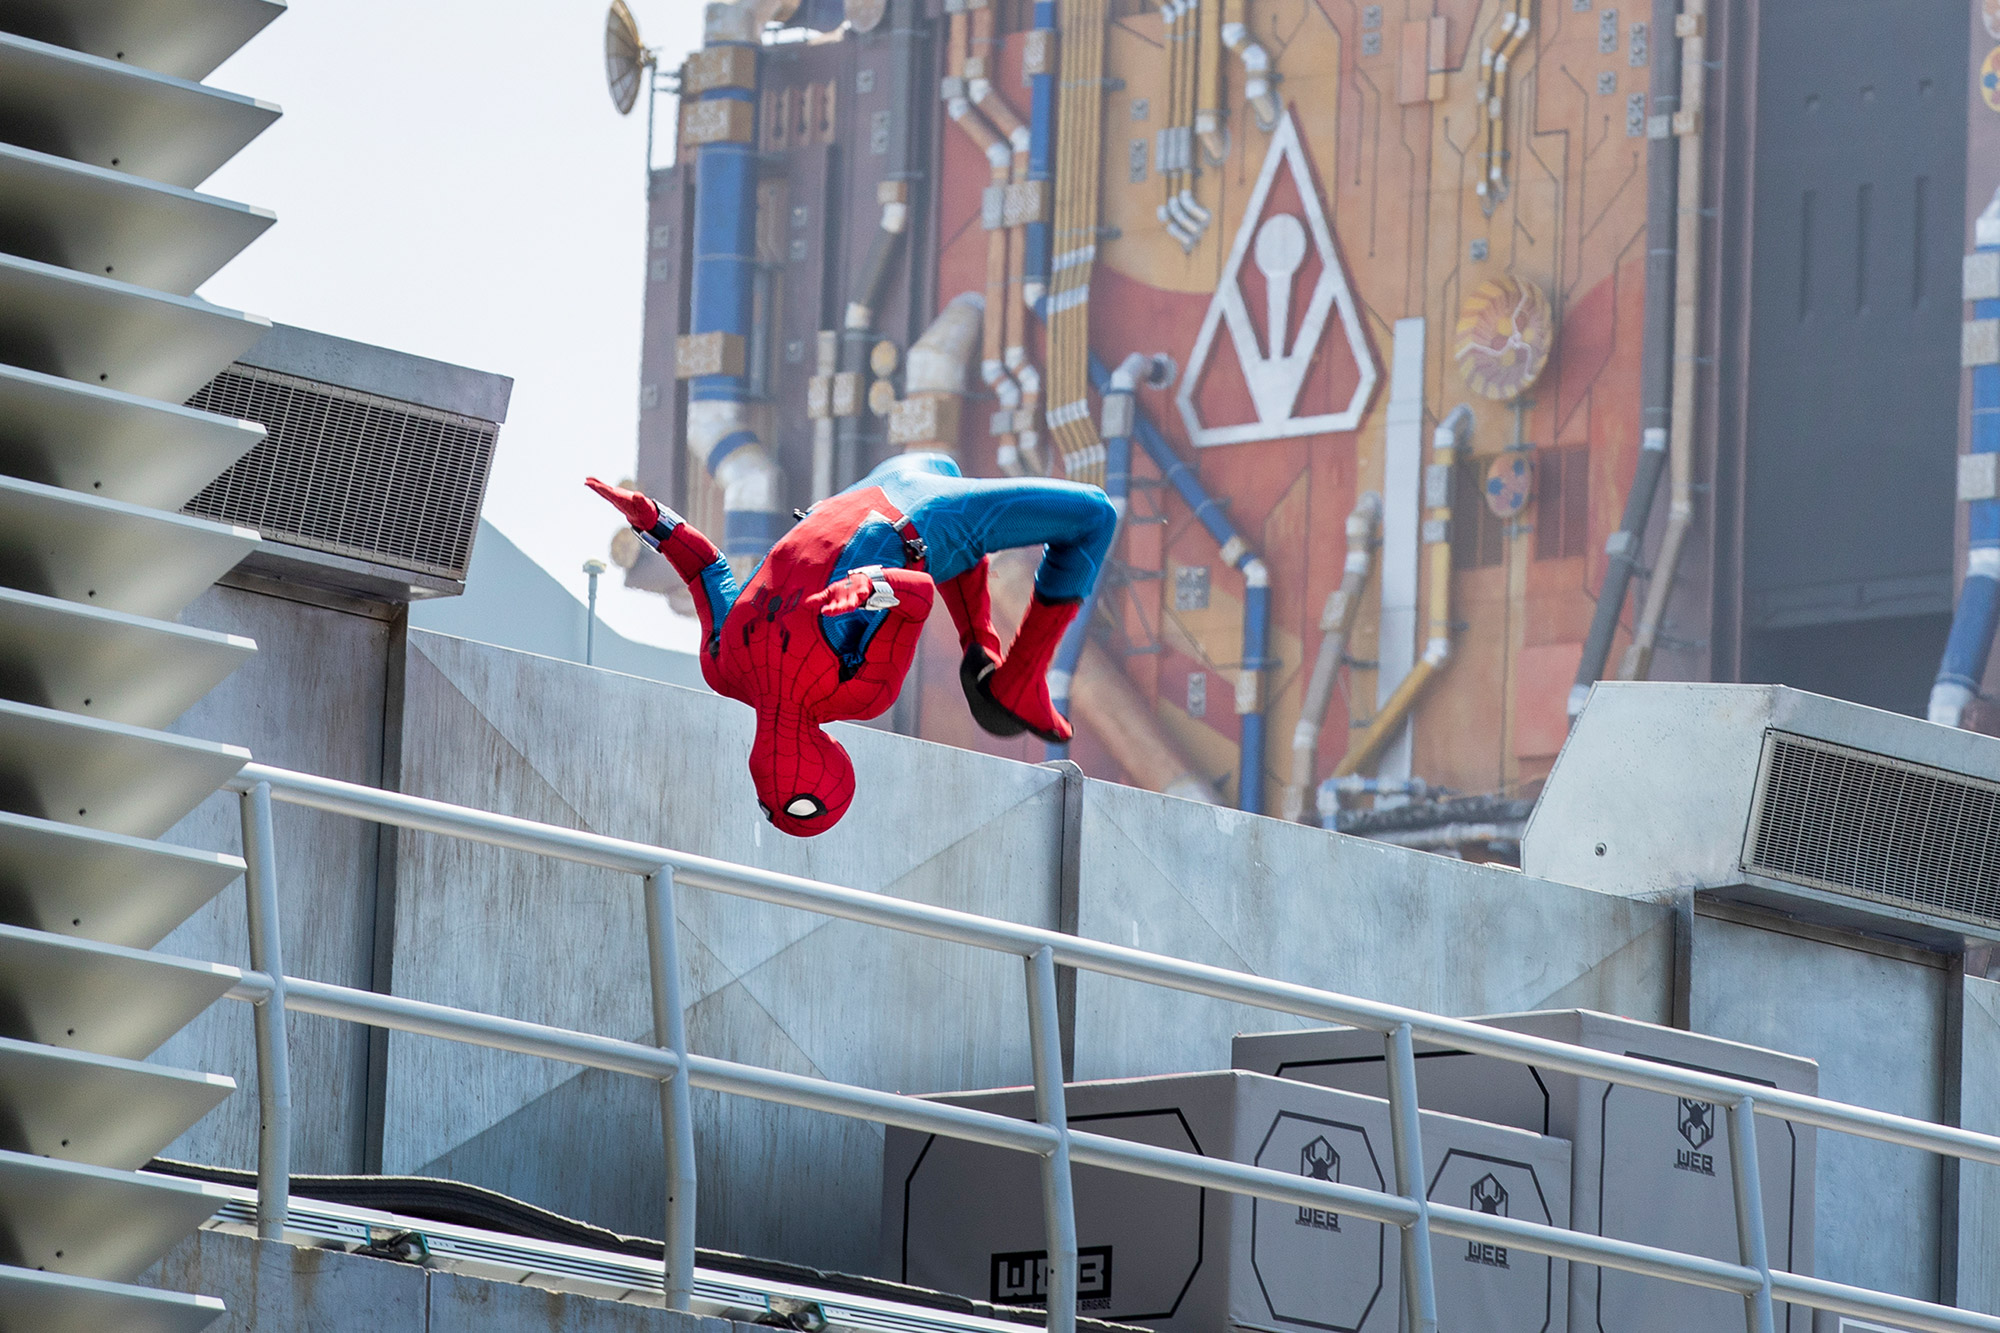 Spider-Man does a back flip while performing at Web Slingers: A Spider-Man Adventure during media preview of Avengers Campus, California Adventure